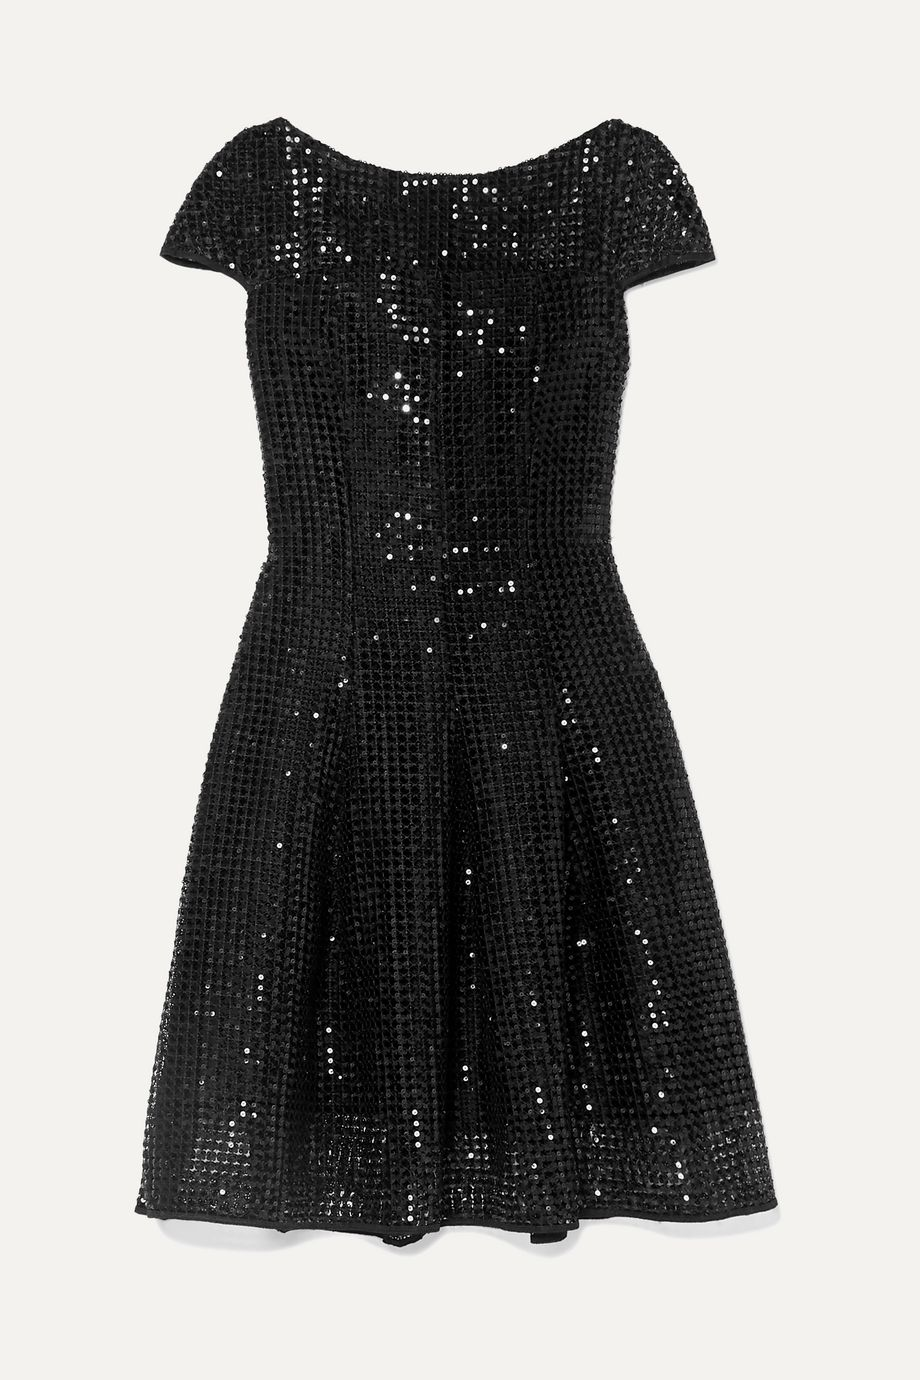 Talbot Runhof Noix sequined macramé dress